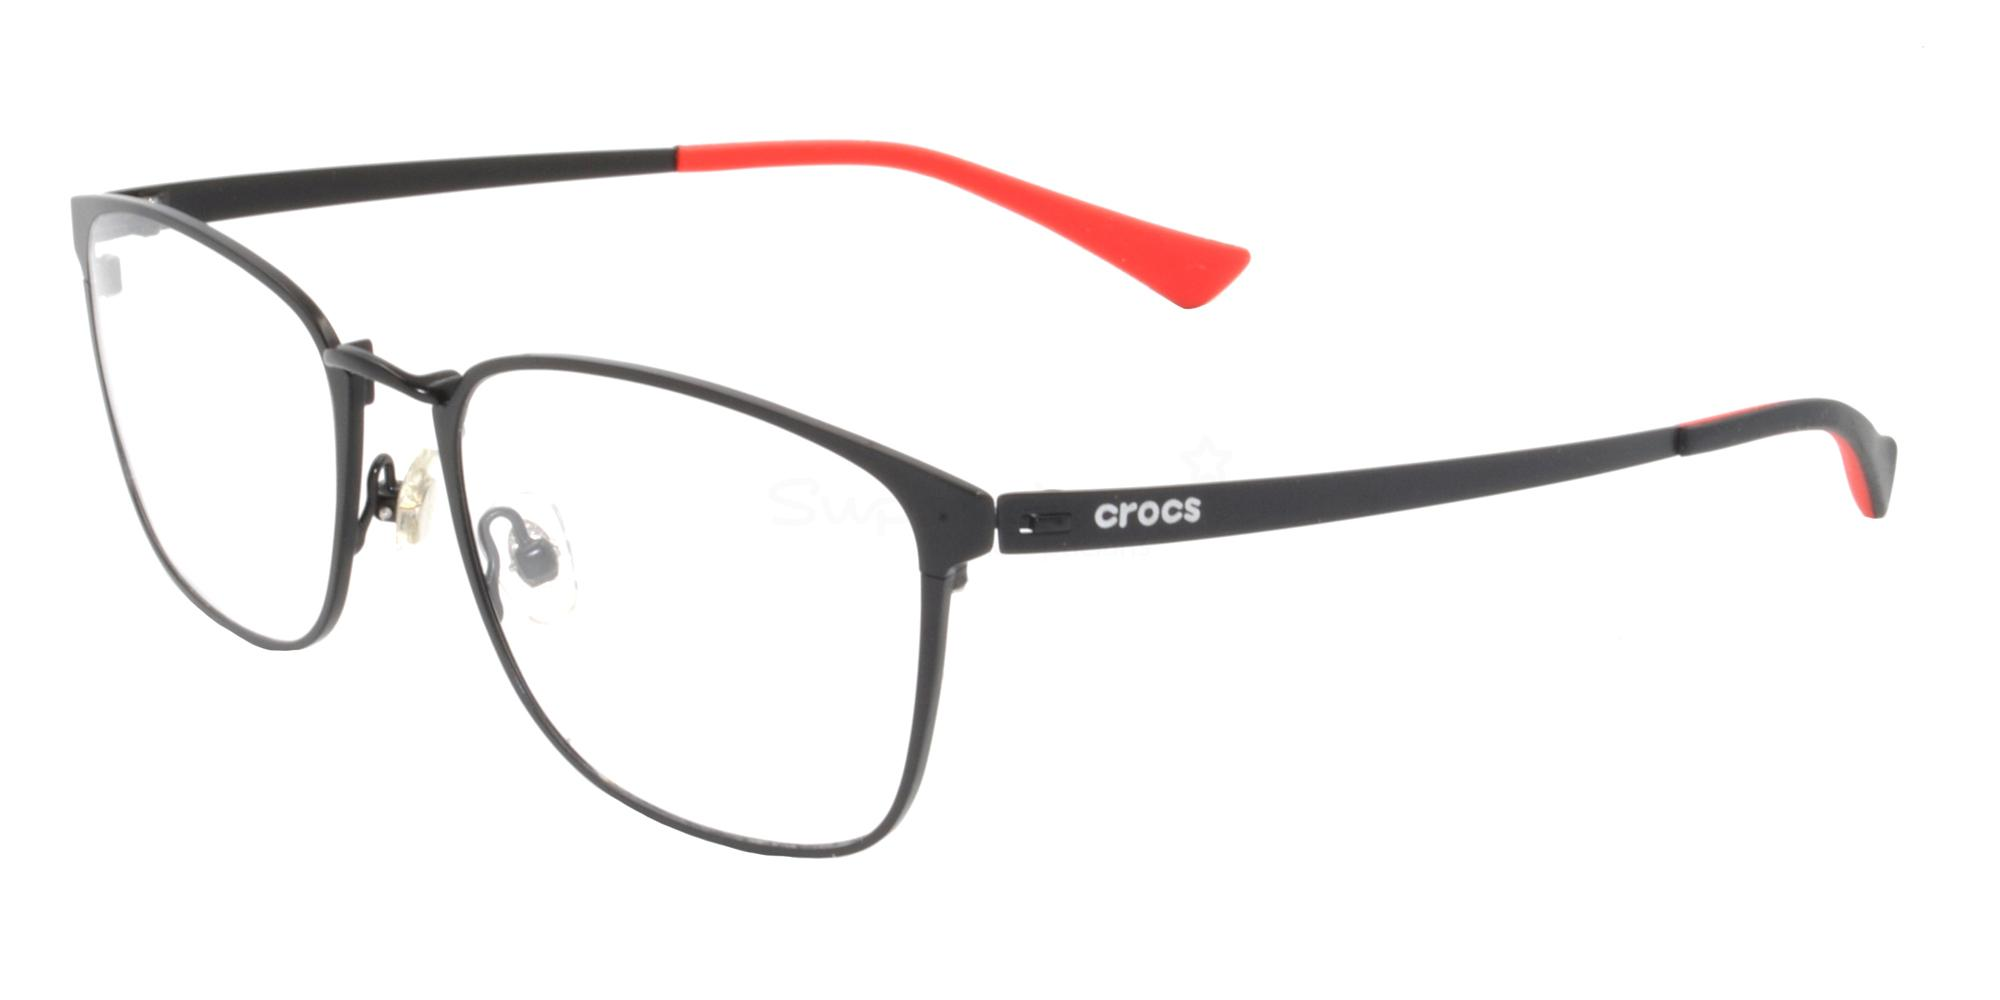 20BK CF4307 Glasses, Crocs Eyewear